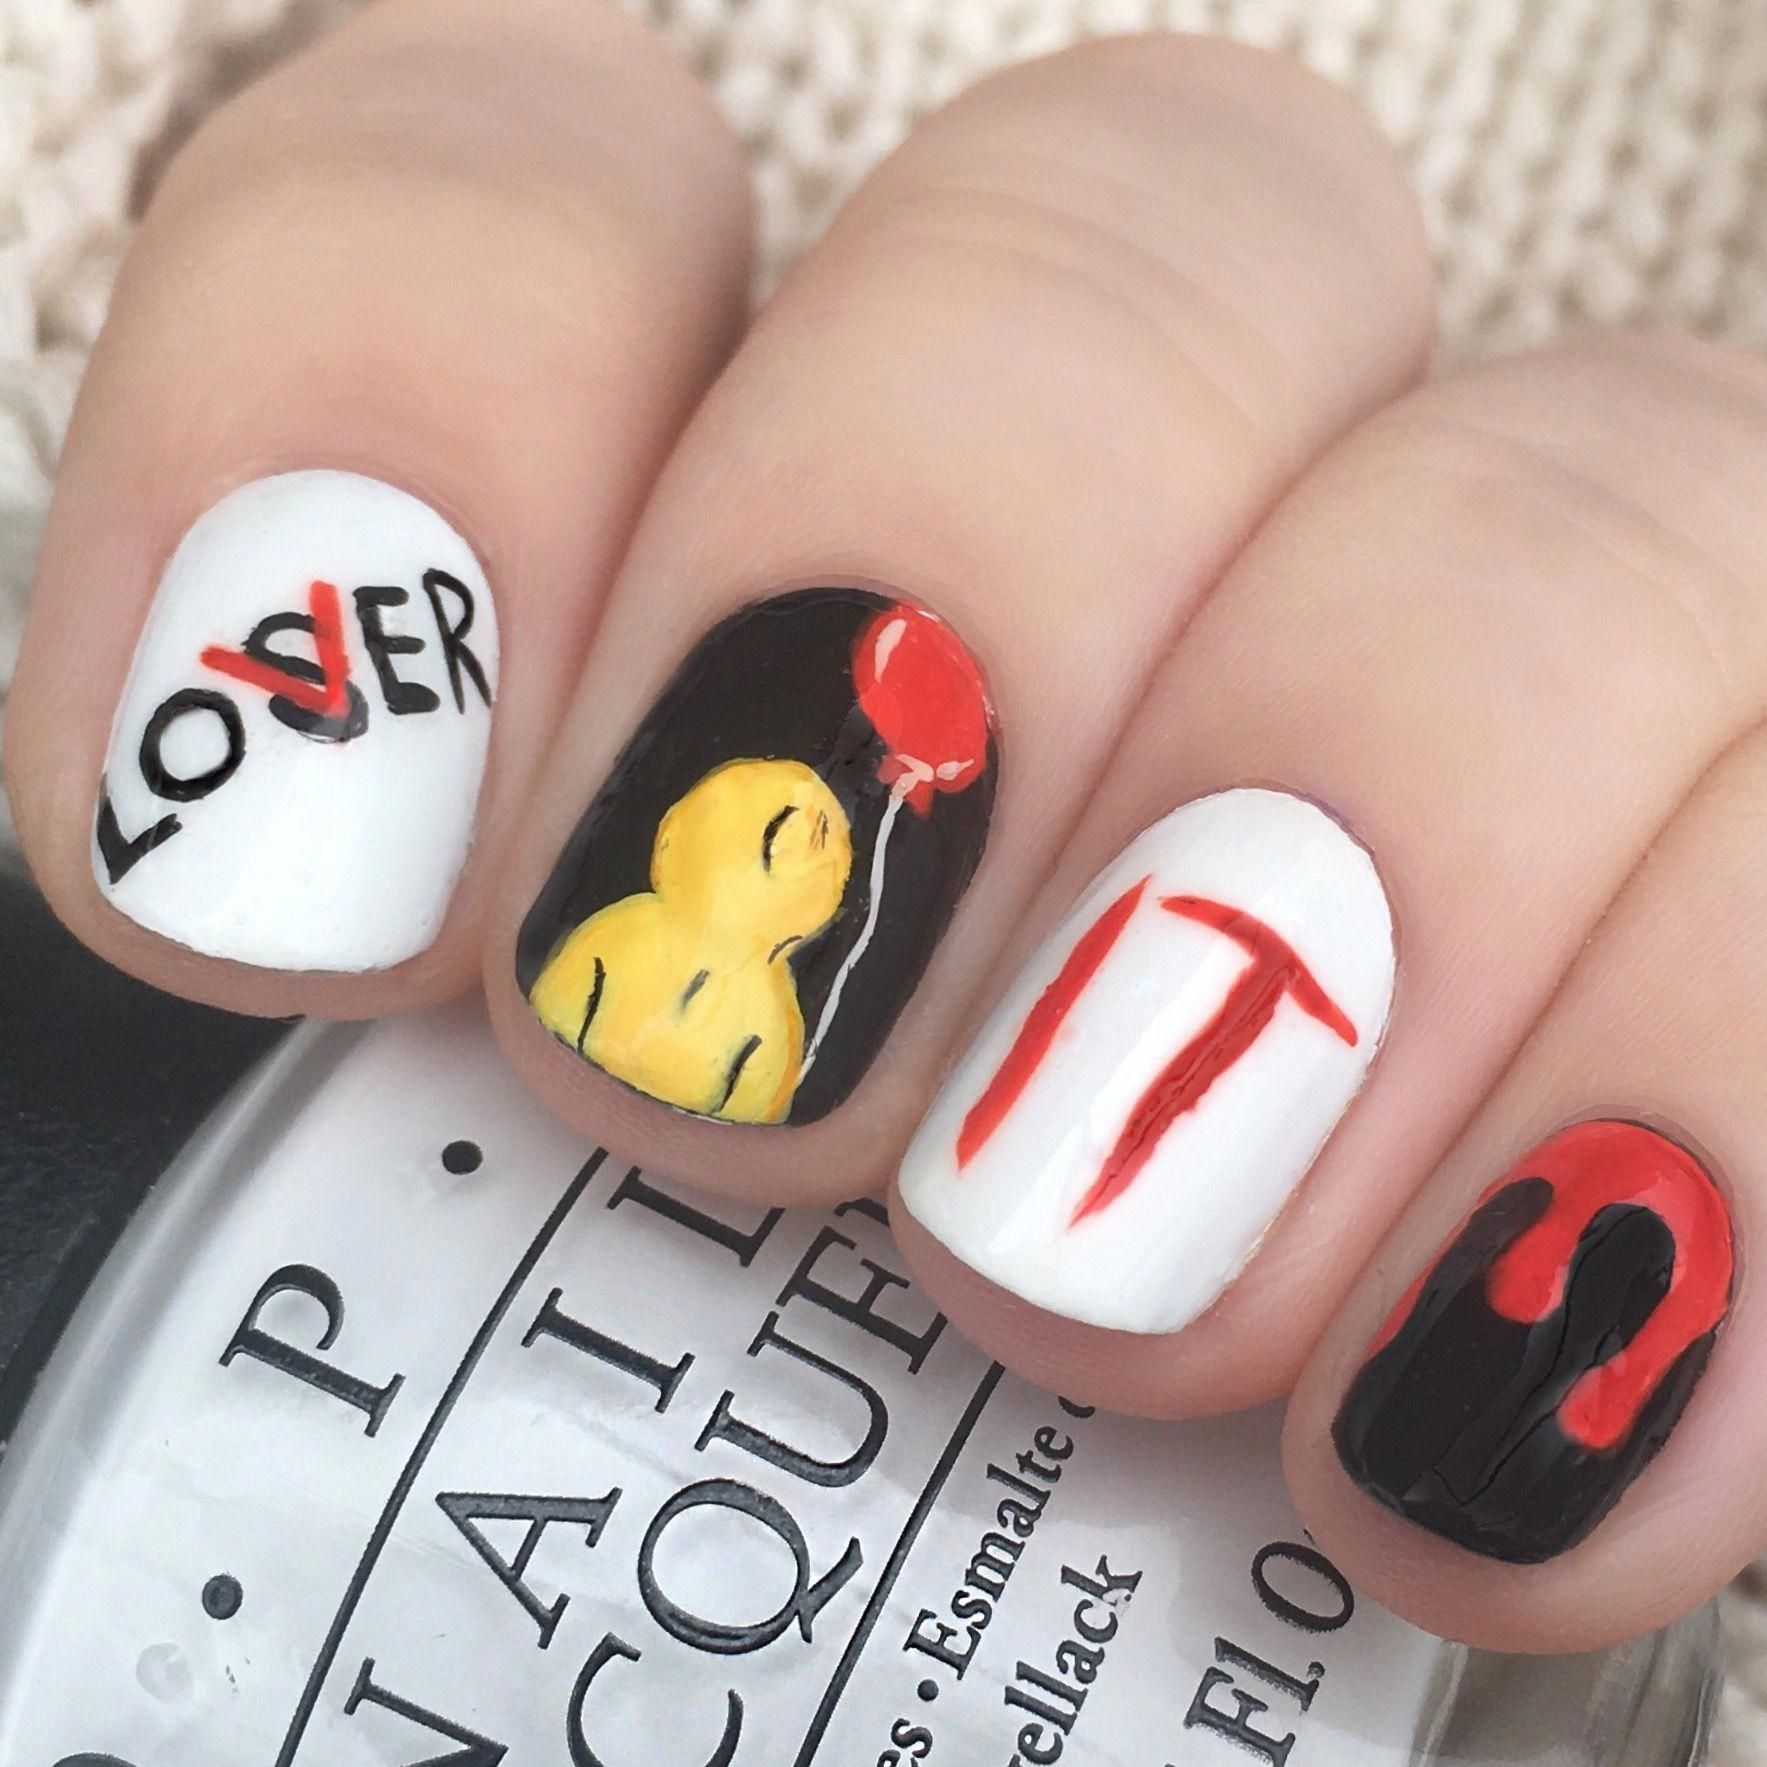 Pin by Dorian Kinley on Nails in 2020 | Horror nails ...